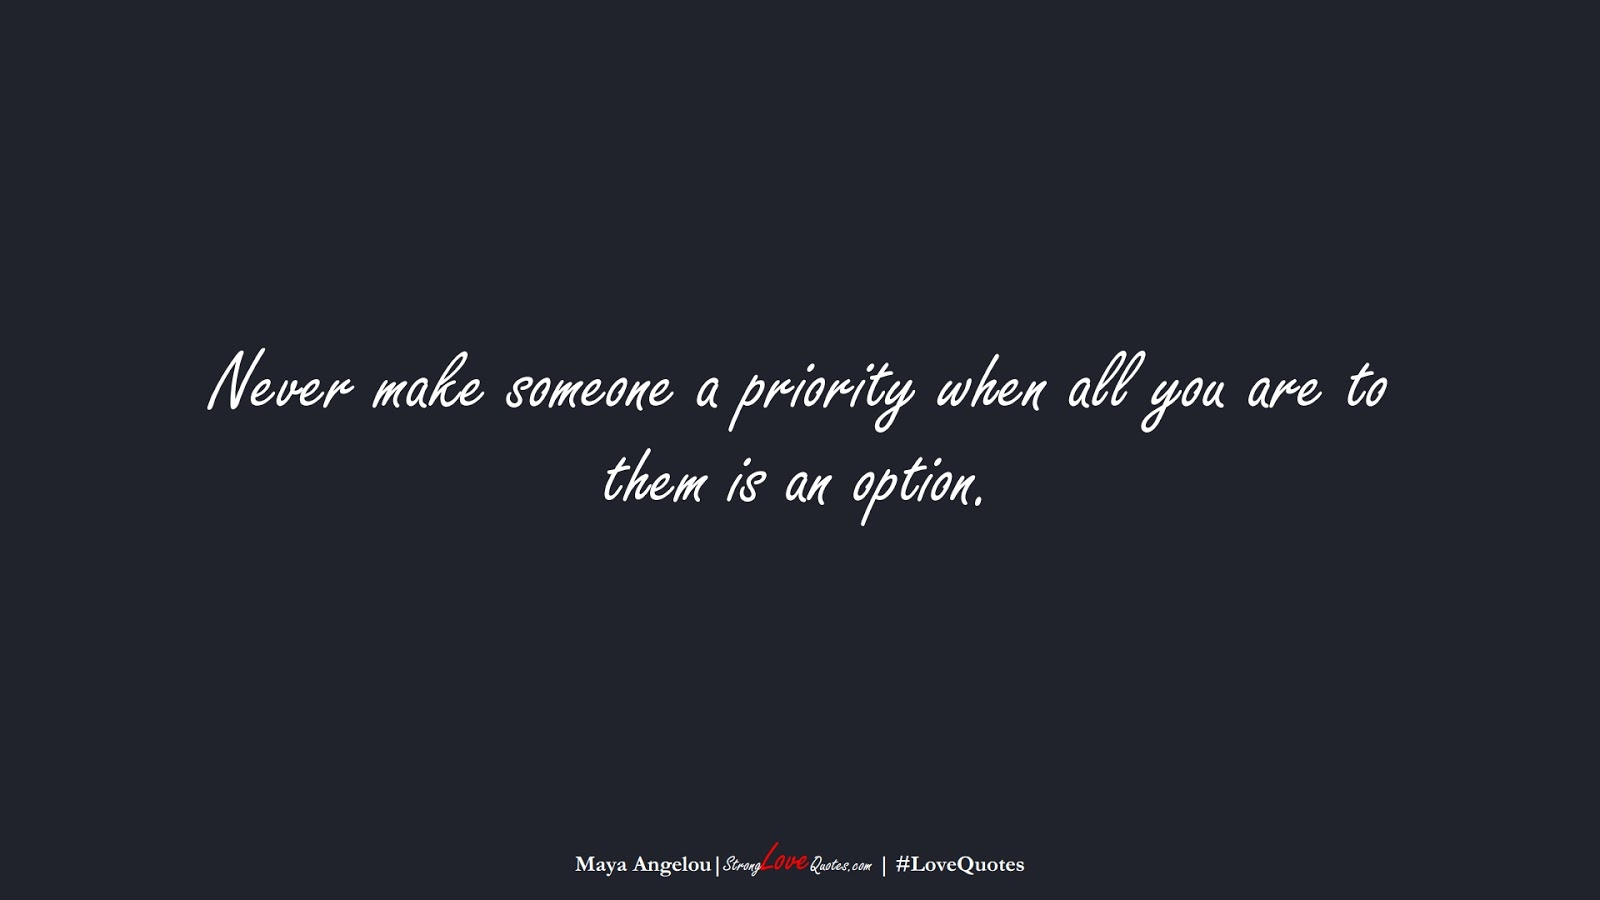 Never make someone a priority when all you are to them is an option. (Maya Angelou);  #LoveQuotes